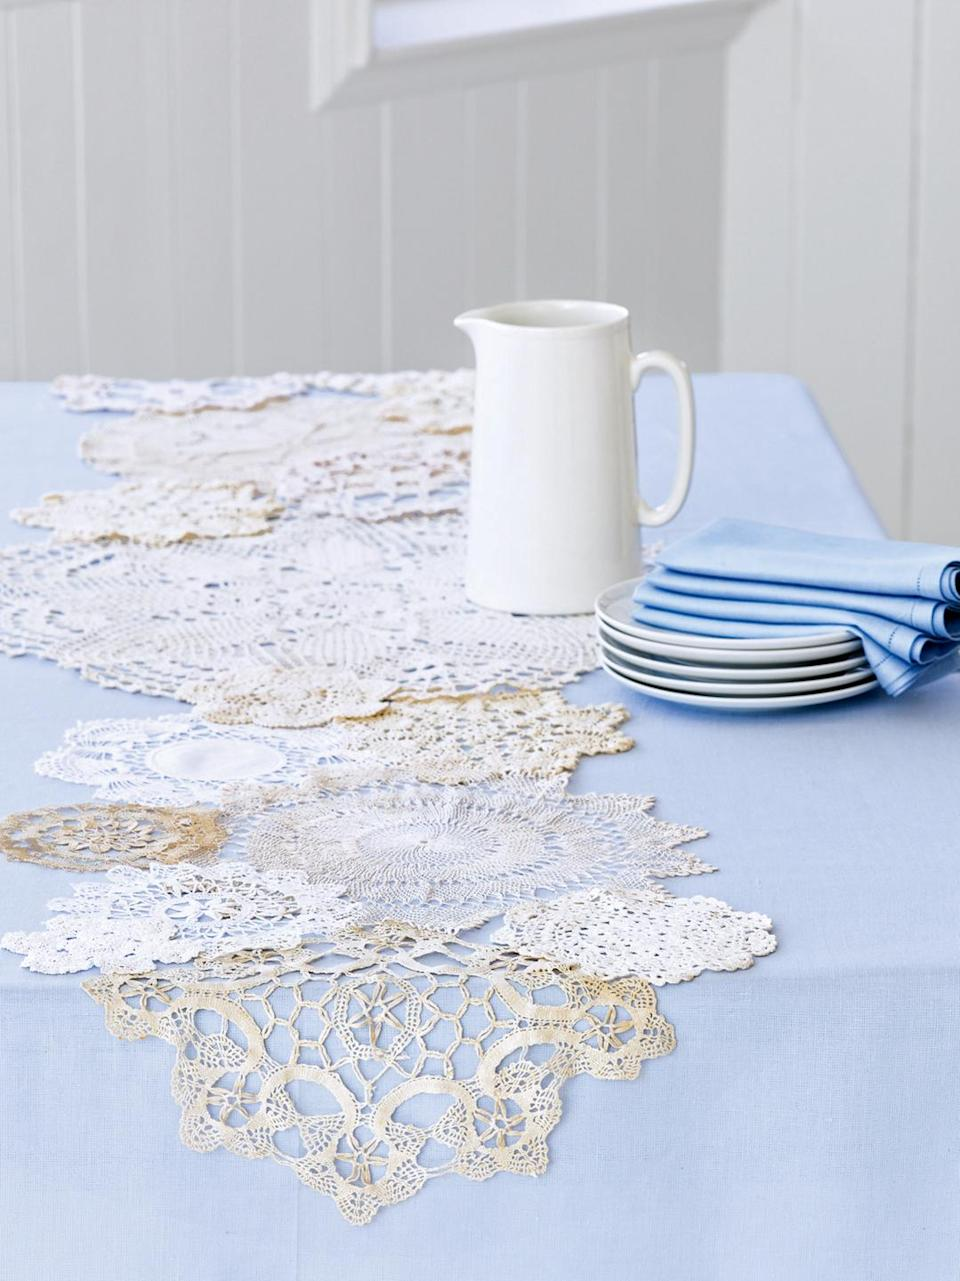 """<p>In the Victorian era, you'd have been hard-pressed to find a table that wasn't topped with a crocheted doily. Today, these handmade bits of lace (which to us look like delicate snowflakes) are more likely to be tucked away in linen closets or piled up at yard sales. Give them a flurry of new life this winter by turning them into a country-chic table runner. </p><p><strong><a class=""""link rapid-noclick-resp"""" href=""""https://go.redirectingat.com?id=74968X1596630&url=https%3A%2F%2Fwww.ebay.com%2Fb%2FAntique-Lace-Crochet-Doilies%2F39445%2Fbn_16561727&sref=https%3A%2F%2Fwww.goodhousekeeping.com%2Fholidays%2Fchristmas-ideas%2Fhow-to%2Fg2196%2Fchristmas-table-settings%2F"""" rel=""""nofollow noopener"""" target=""""_blank"""" data-ylk=""""slk:SHOP VINTAGE DOILIES"""">SHOP VINTAGE DOILIES</a></strong></p>"""